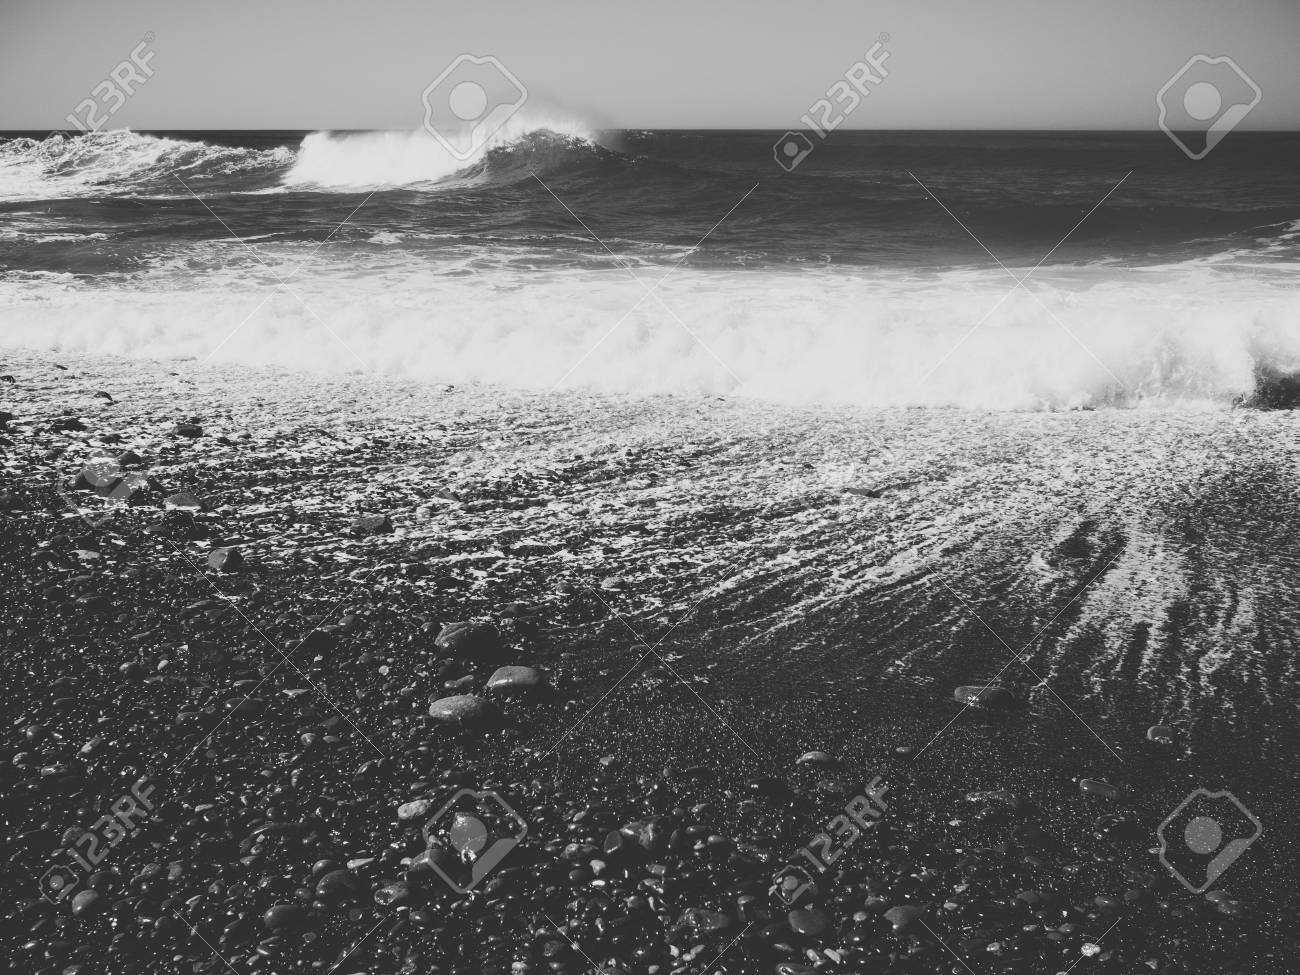 Seascape photo of a beach with dramatic waves black and white